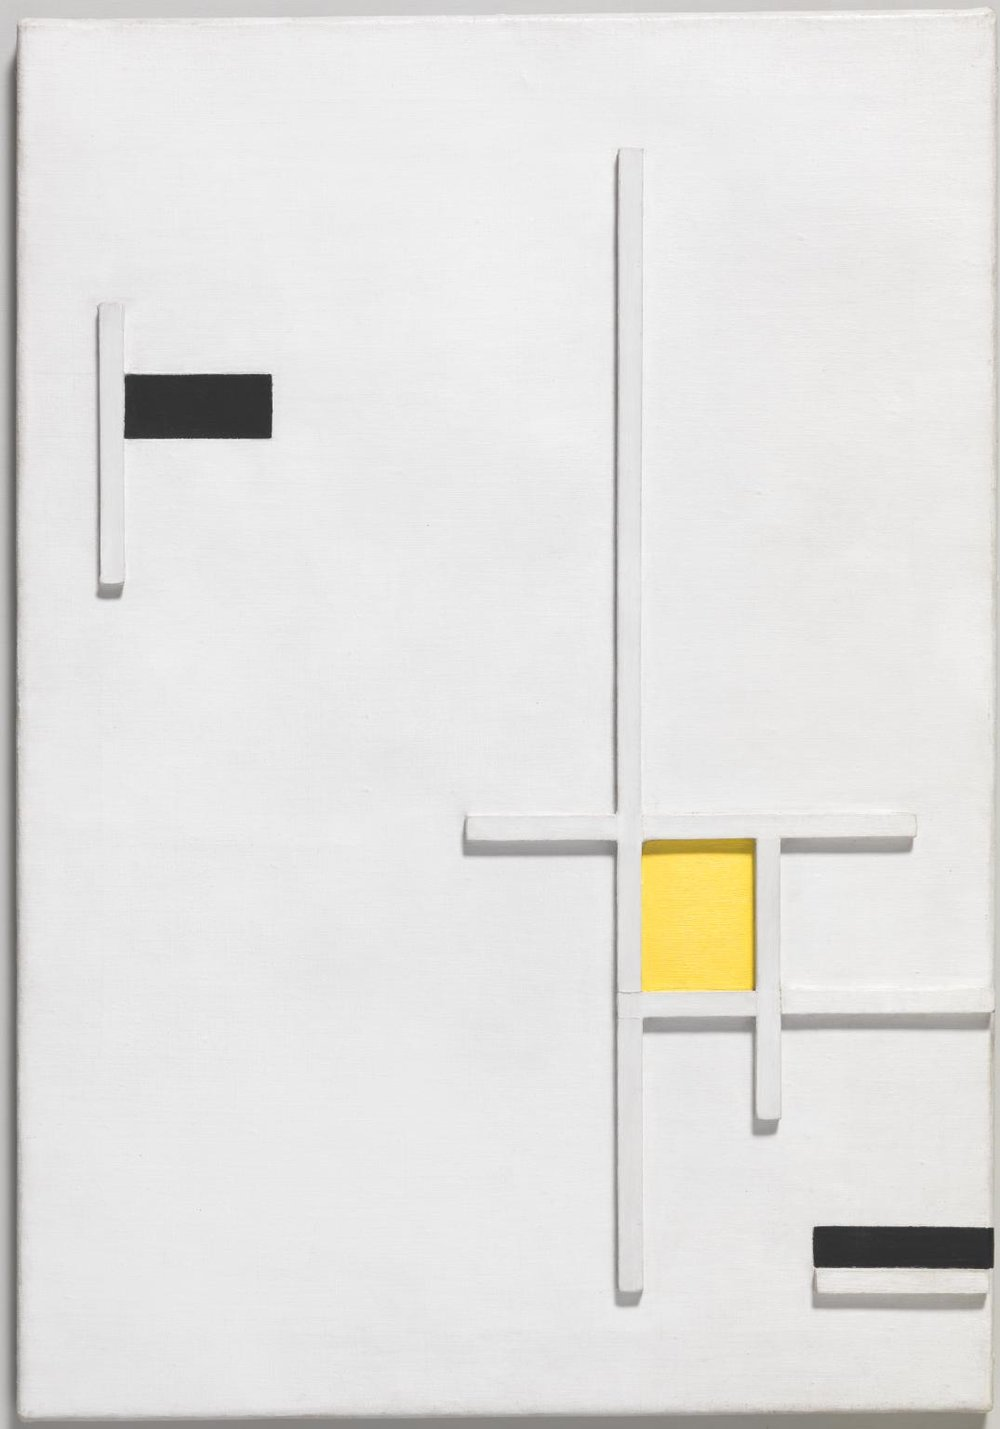 4b-marlow-moss-Composition in Yellow, Black and White 1949 .jpg